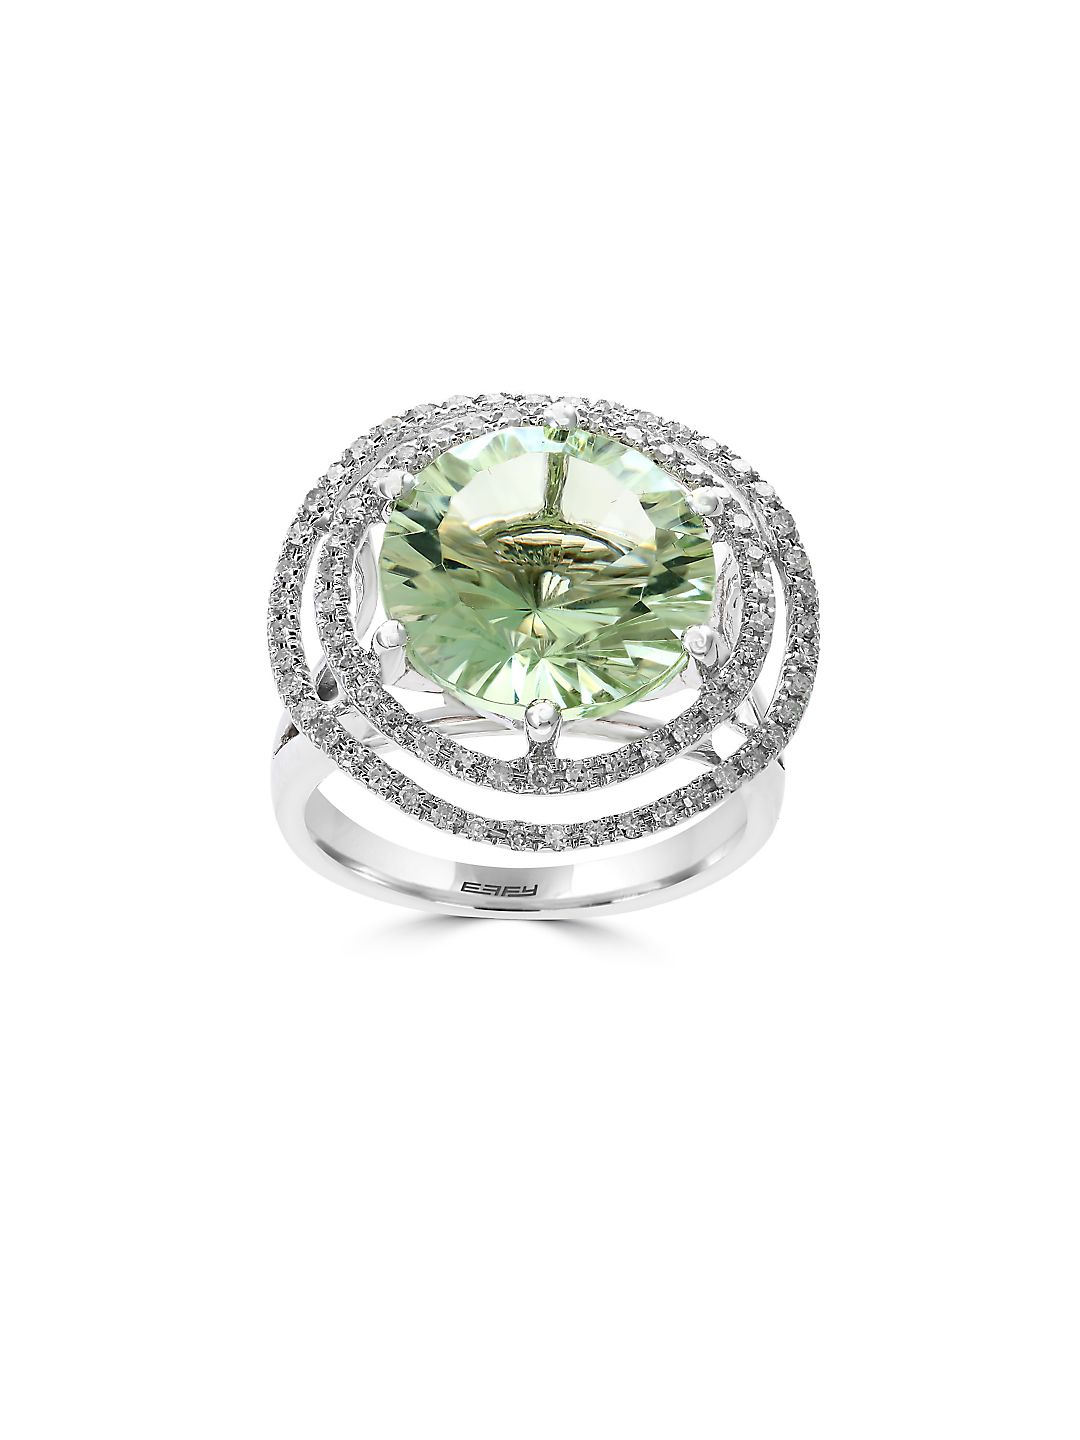 Diamond, Green Amethyst and 14K White Gold